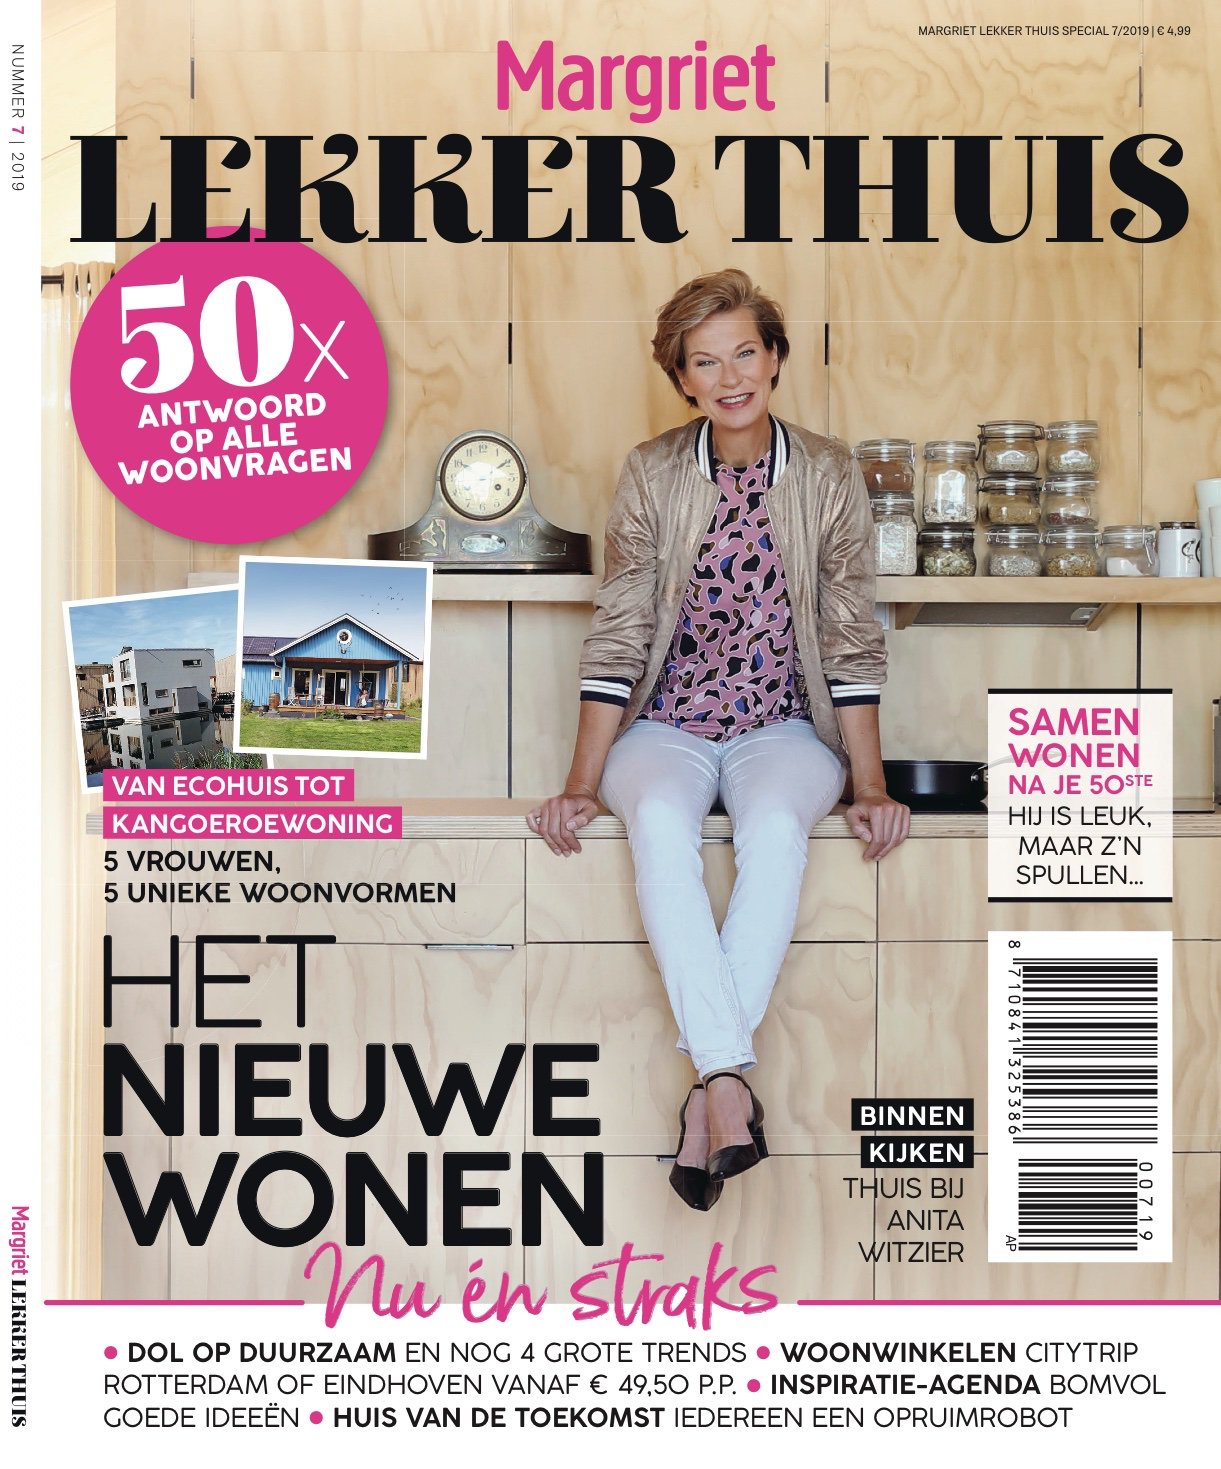 Margriet Special